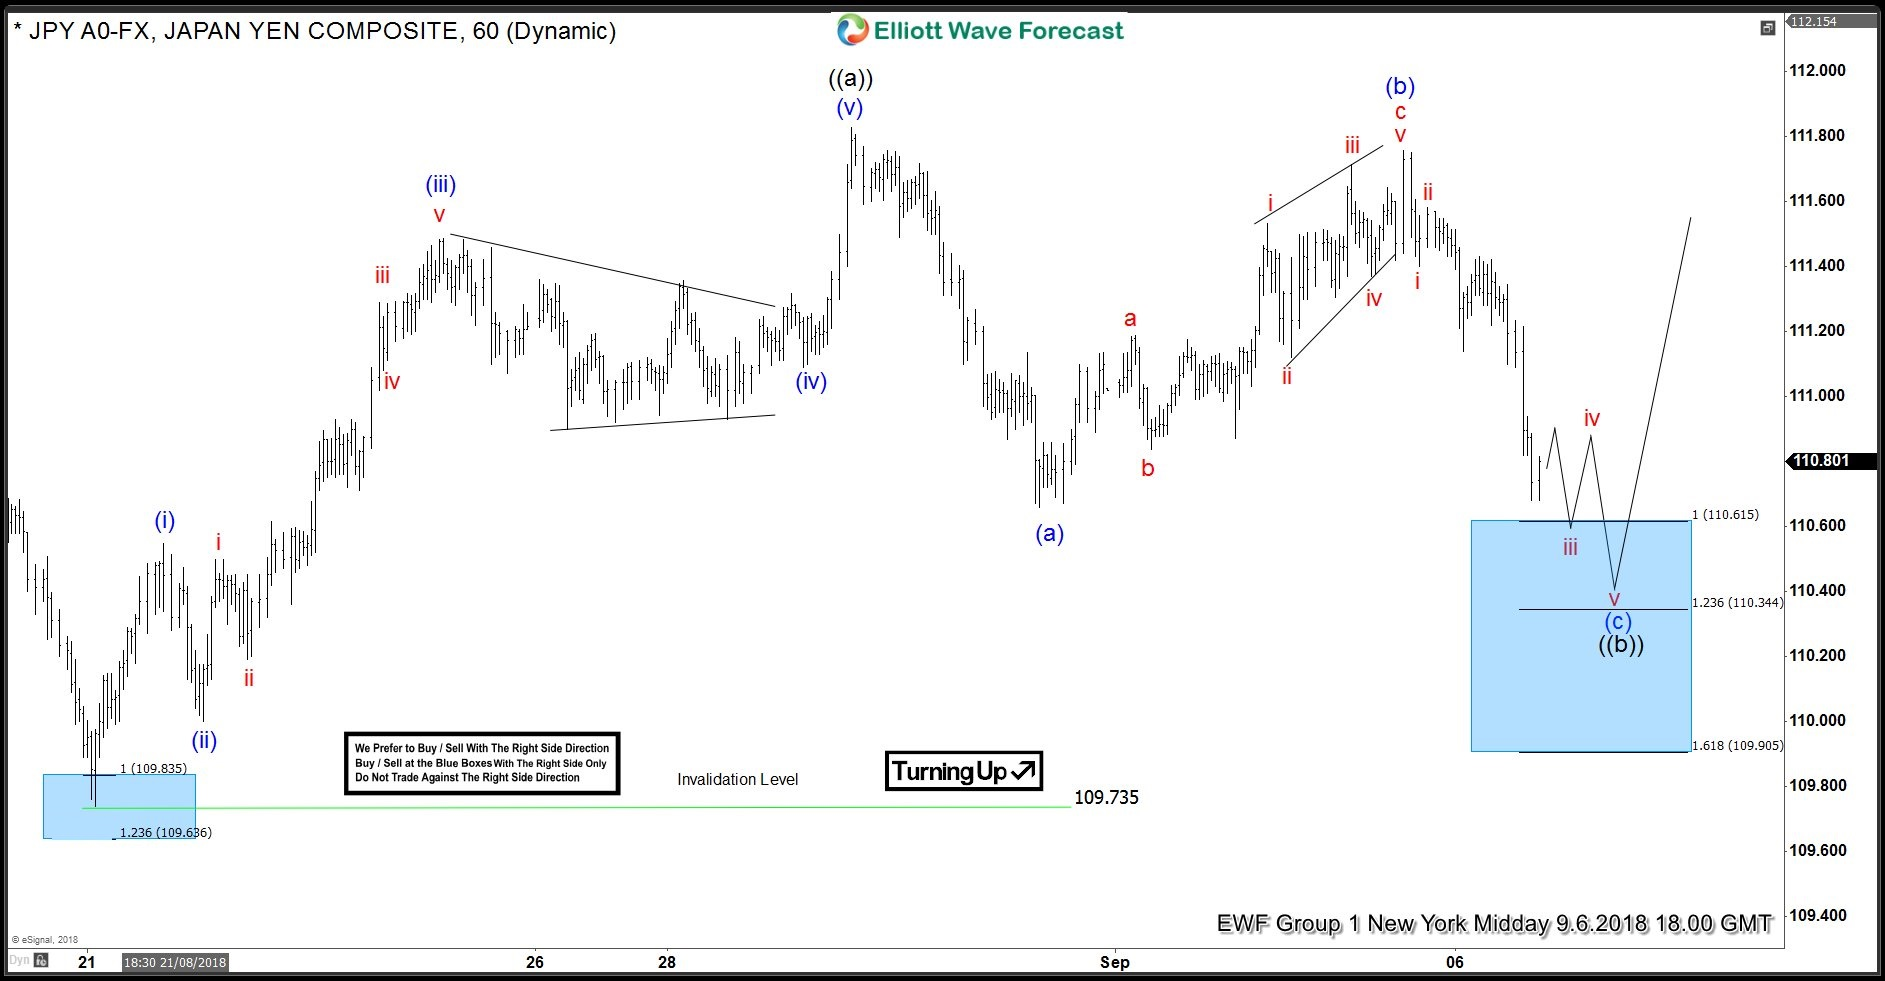 USDJPY: Elliott Wave Forecasting The Rally